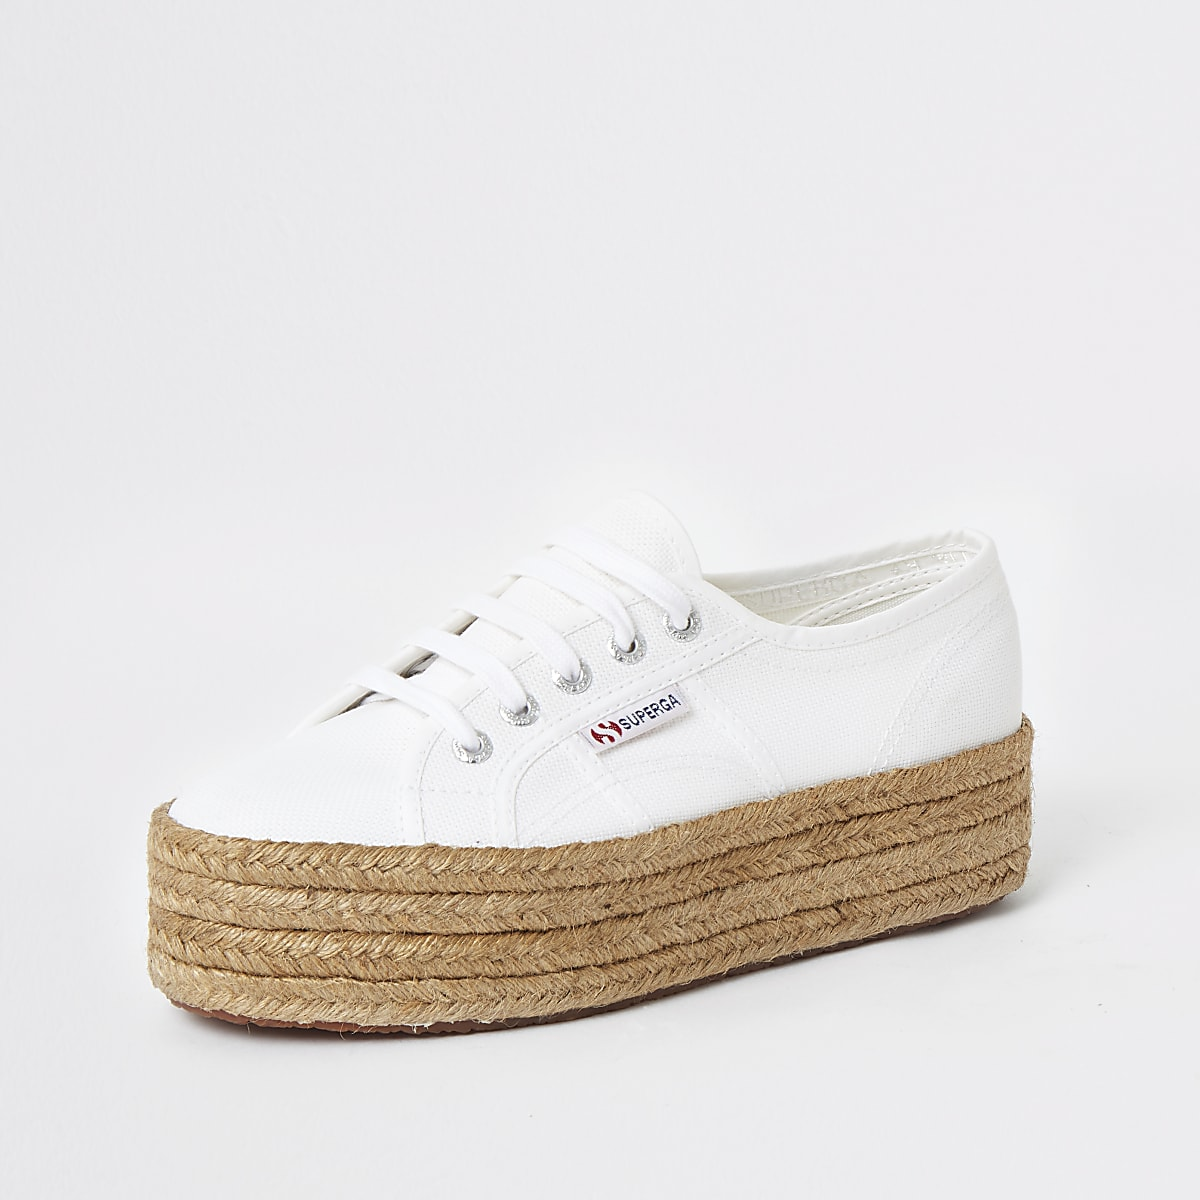 a4b5ebf9d Superga white espadrille runner trainers - Trainers - Shoes & Boots ...